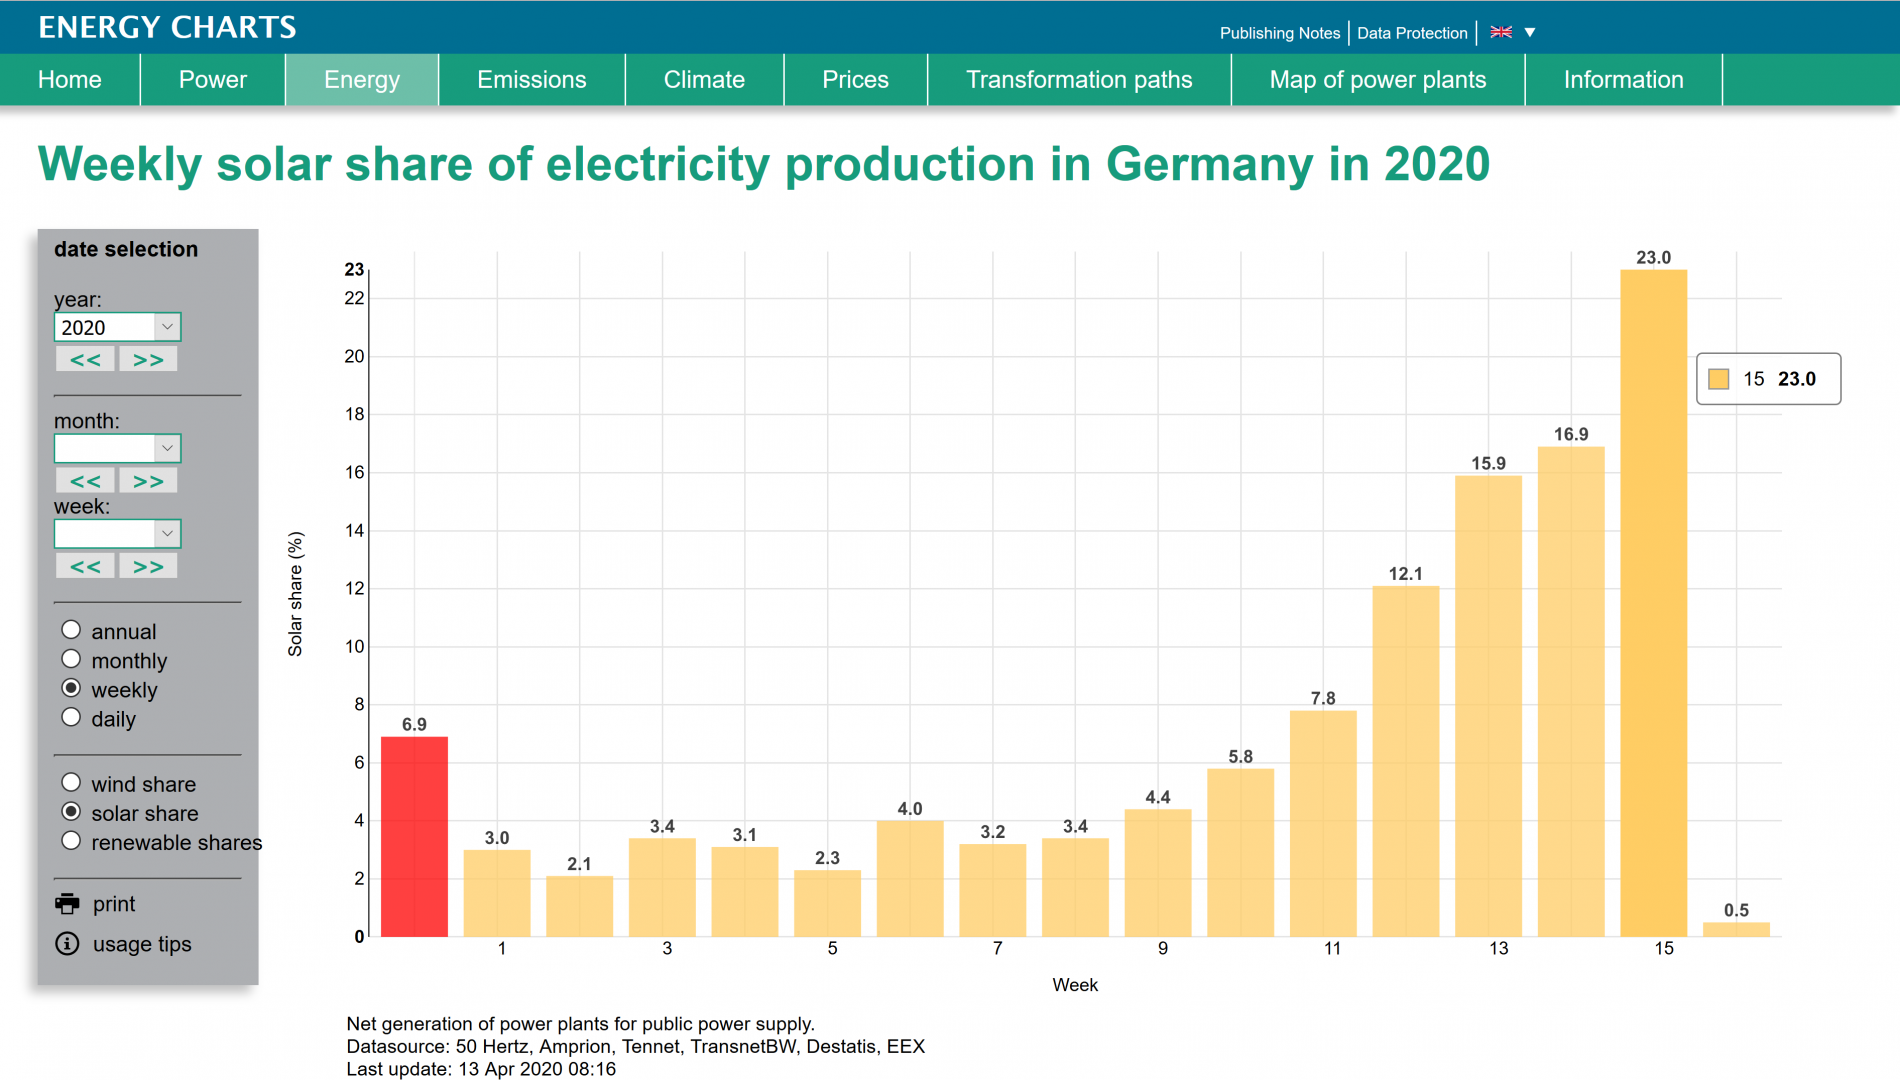 At 1.74TWh, the power generated by solar between 6 and 12 April 2020 (both days inclusive) surpassed that of wind (1.28TWh), nuclear (1.23TWh) and brown coal (1.09TWh), according to Fraunhofer ISE. Image credit: Fraunhofer ISE.